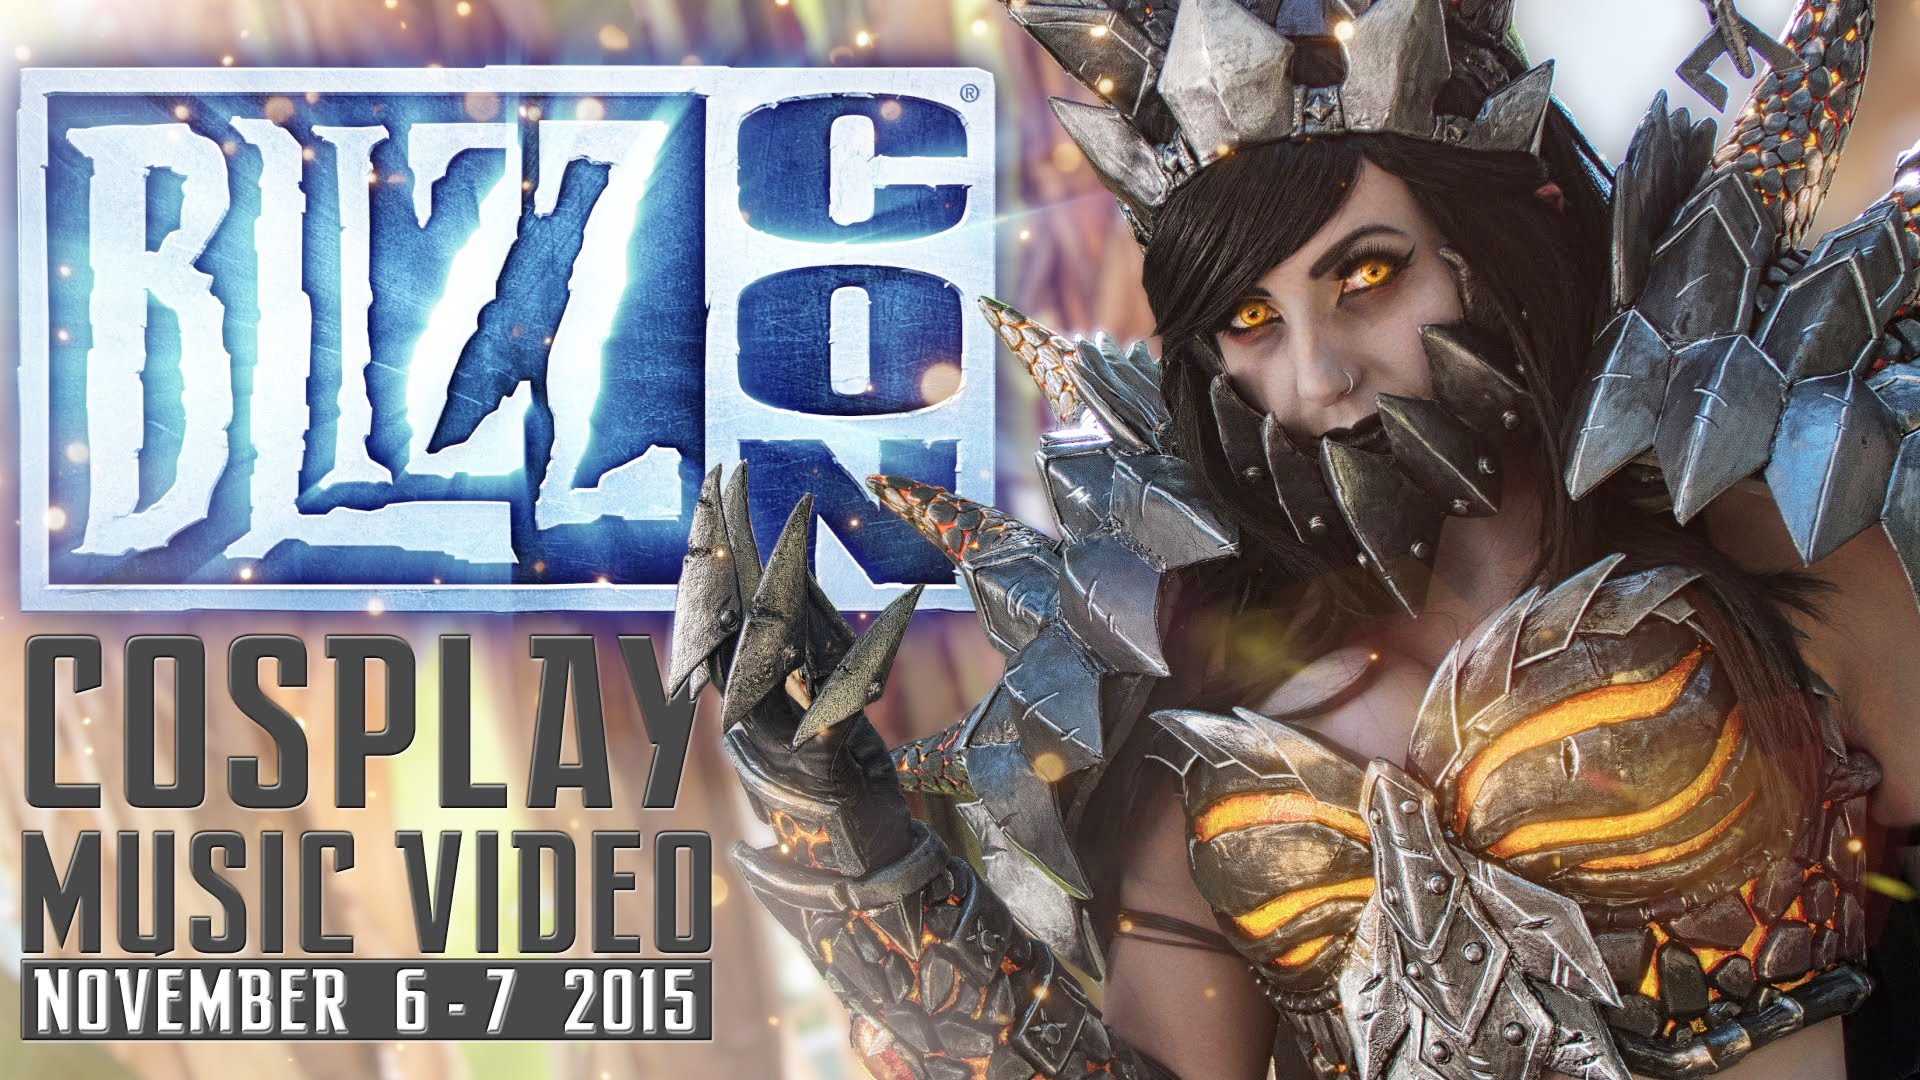 BlizzCon 2015 - Cosplay Music Video